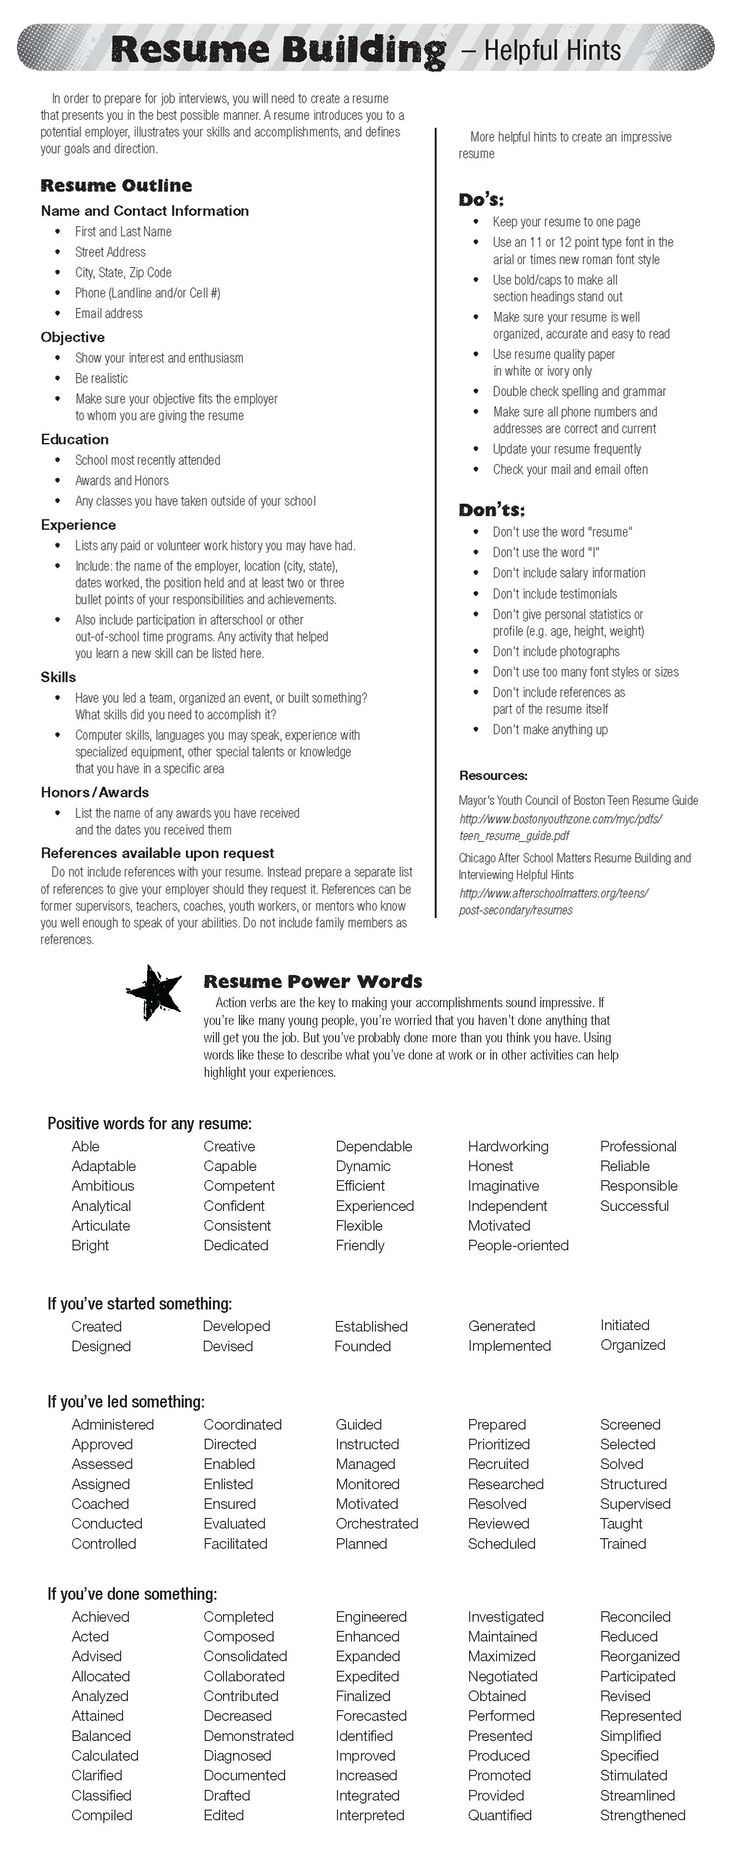 Opposenewapstandardsus  Pleasant  Ideas About Resume On Pinterest  Cv Format Resume Cv And  With Remarkable  Ideas About Resume On Pinterest  Cv Format Resume Cv And Resume Templates With Comely Firefighter Resume Also Resume Samples Free In Addition Best Font For A Resume And Free Resumes Templates As Well As Mechanic Resume Additionally Can A Resume Be  Pages From Pinterestcom With Opposenewapstandardsus  Remarkable  Ideas About Resume On Pinterest  Cv Format Resume Cv And  With Comely  Ideas About Resume On Pinterest  Cv Format Resume Cv And Resume Templates And Pleasant Firefighter Resume Also Resume Samples Free In Addition Best Font For A Resume From Pinterestcom